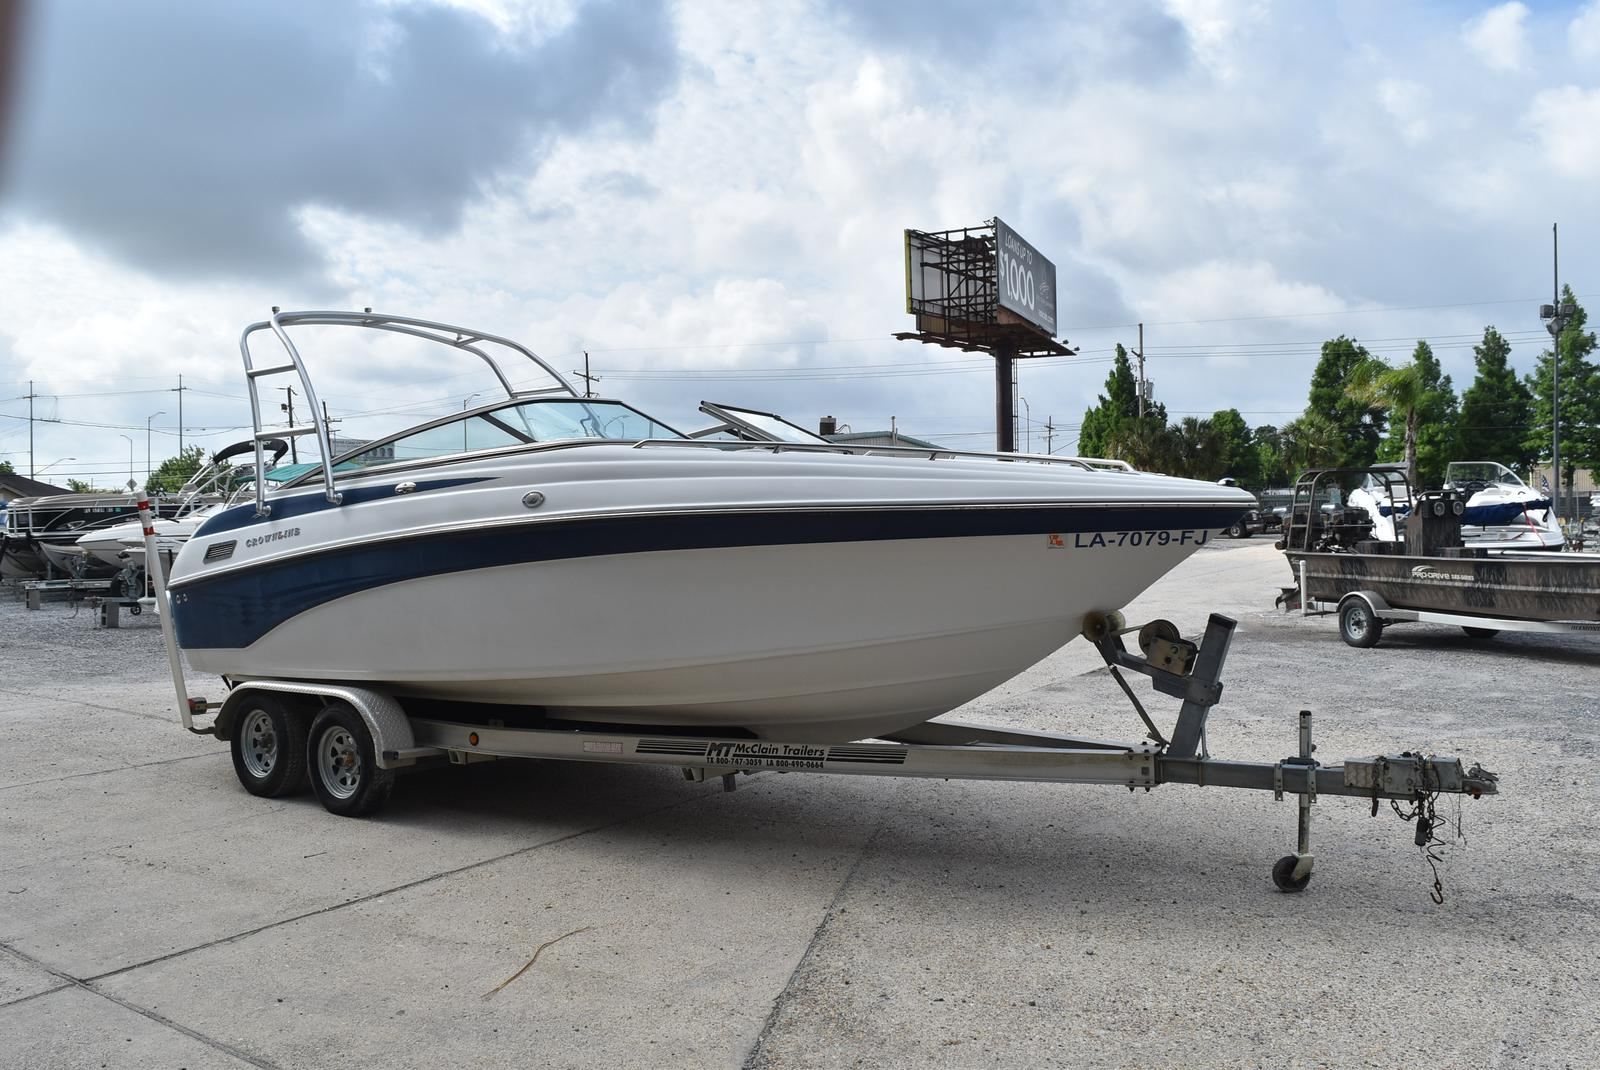 2003 Crownline boat for sale, model of the boat is 230 BR & Image # 6 of 16